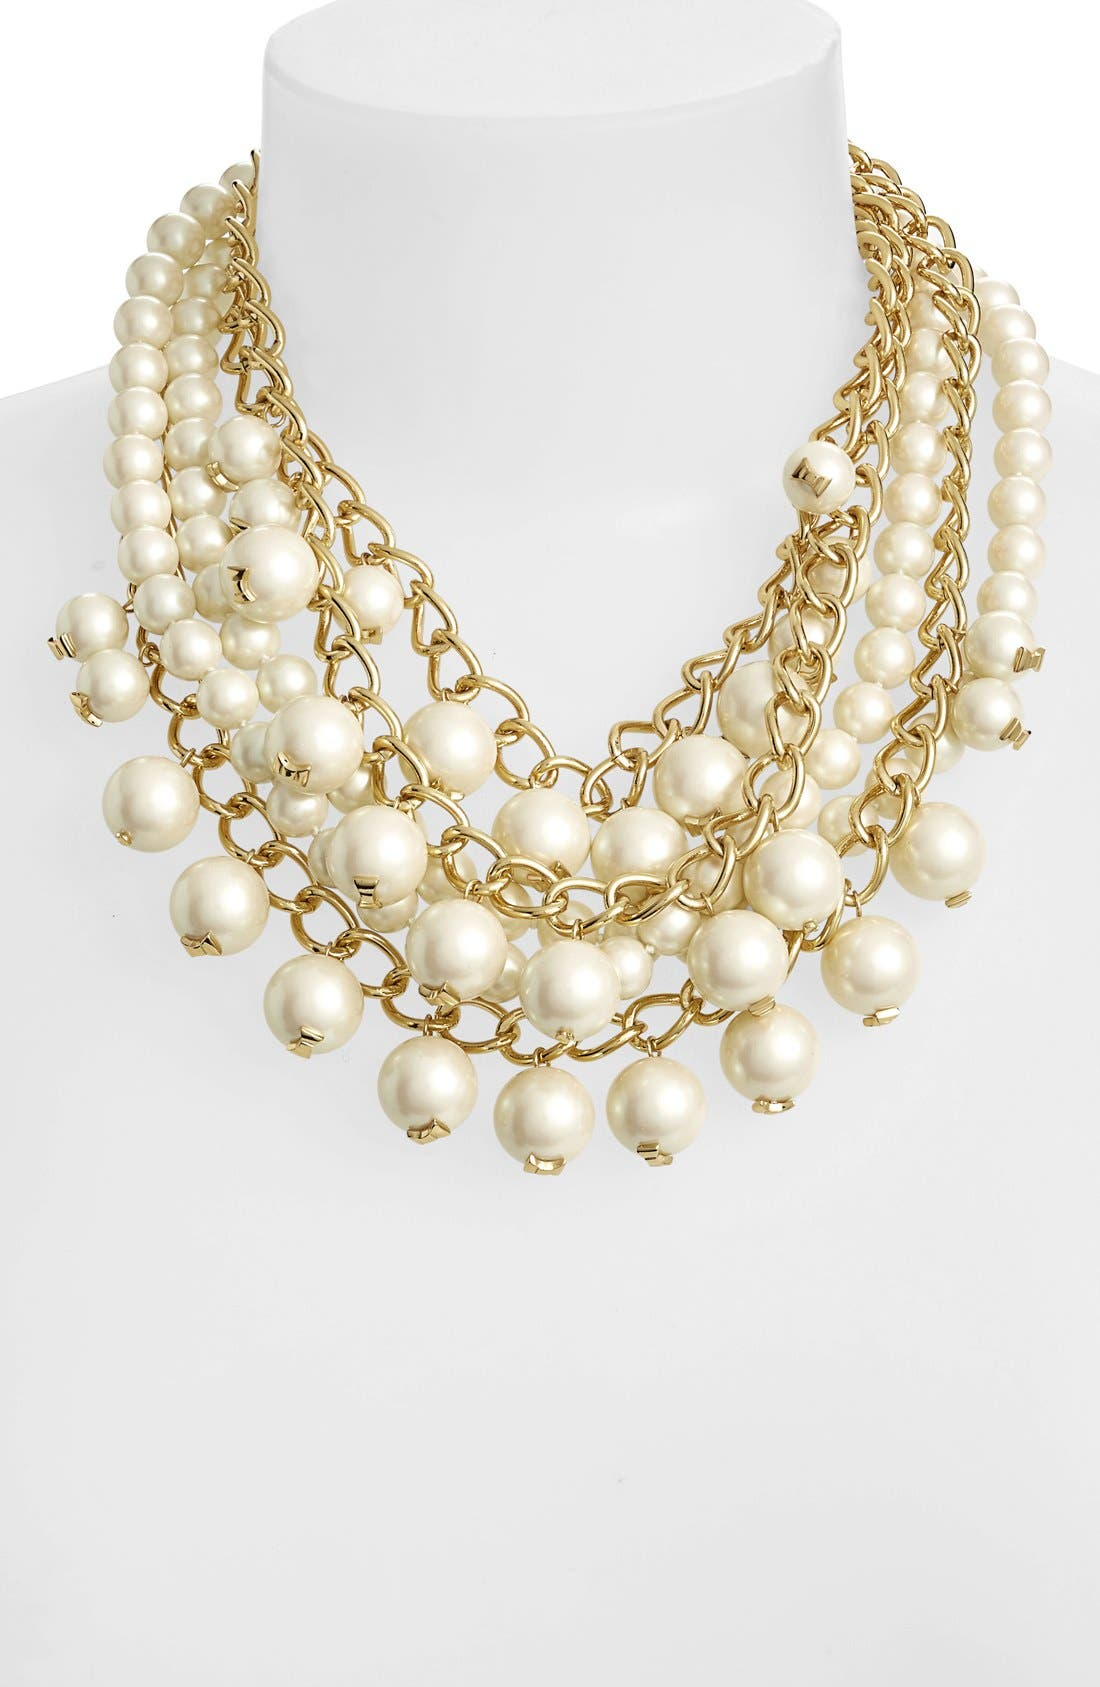 Main Image - kate spade new york 'purely pearl' faux pearl statement necklace